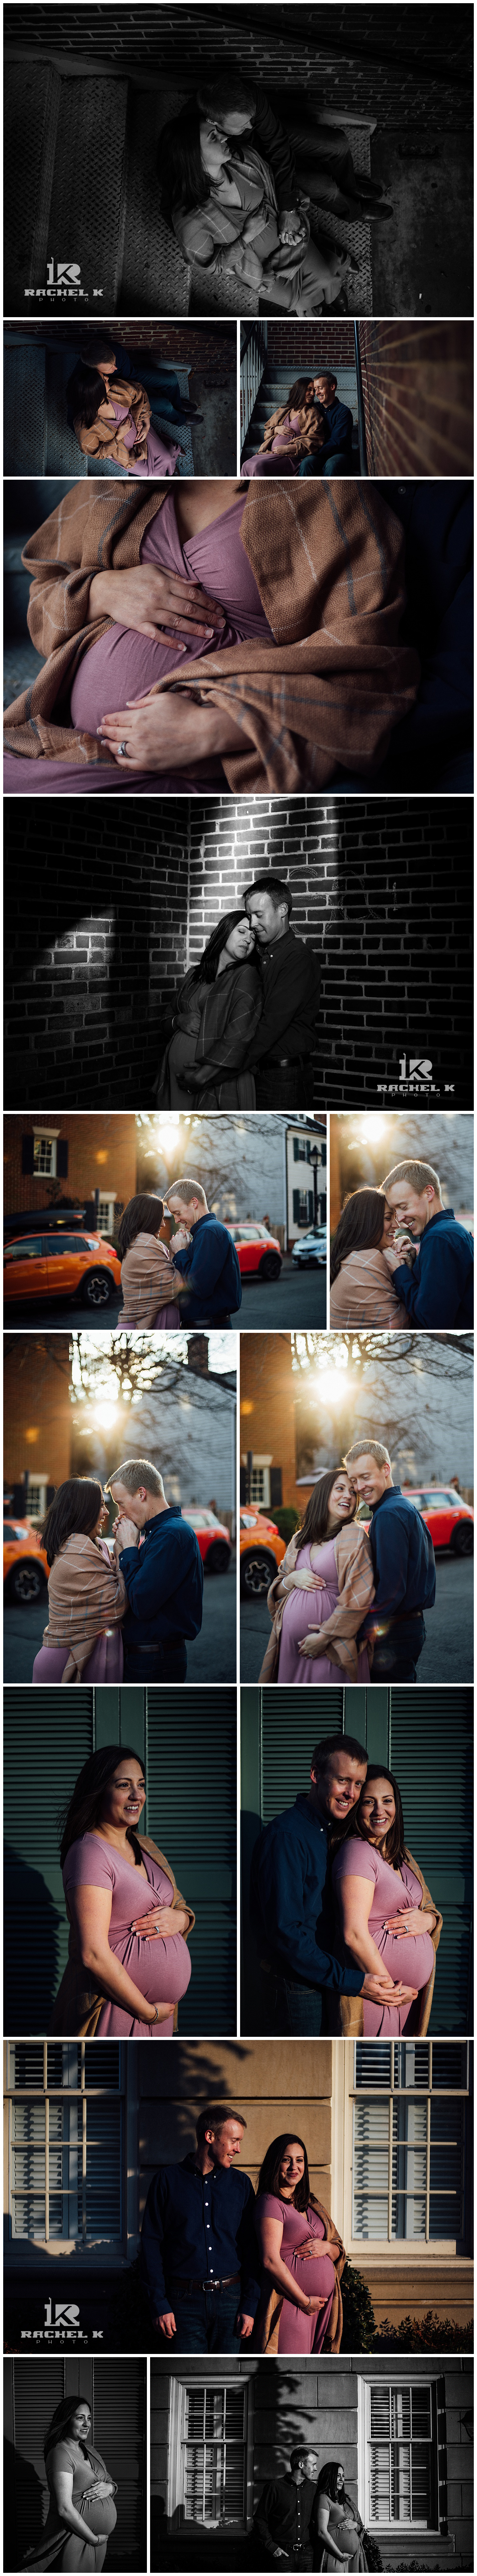 Winter Old Town Alexandria maternity session in pink dress by Rachel K Photo